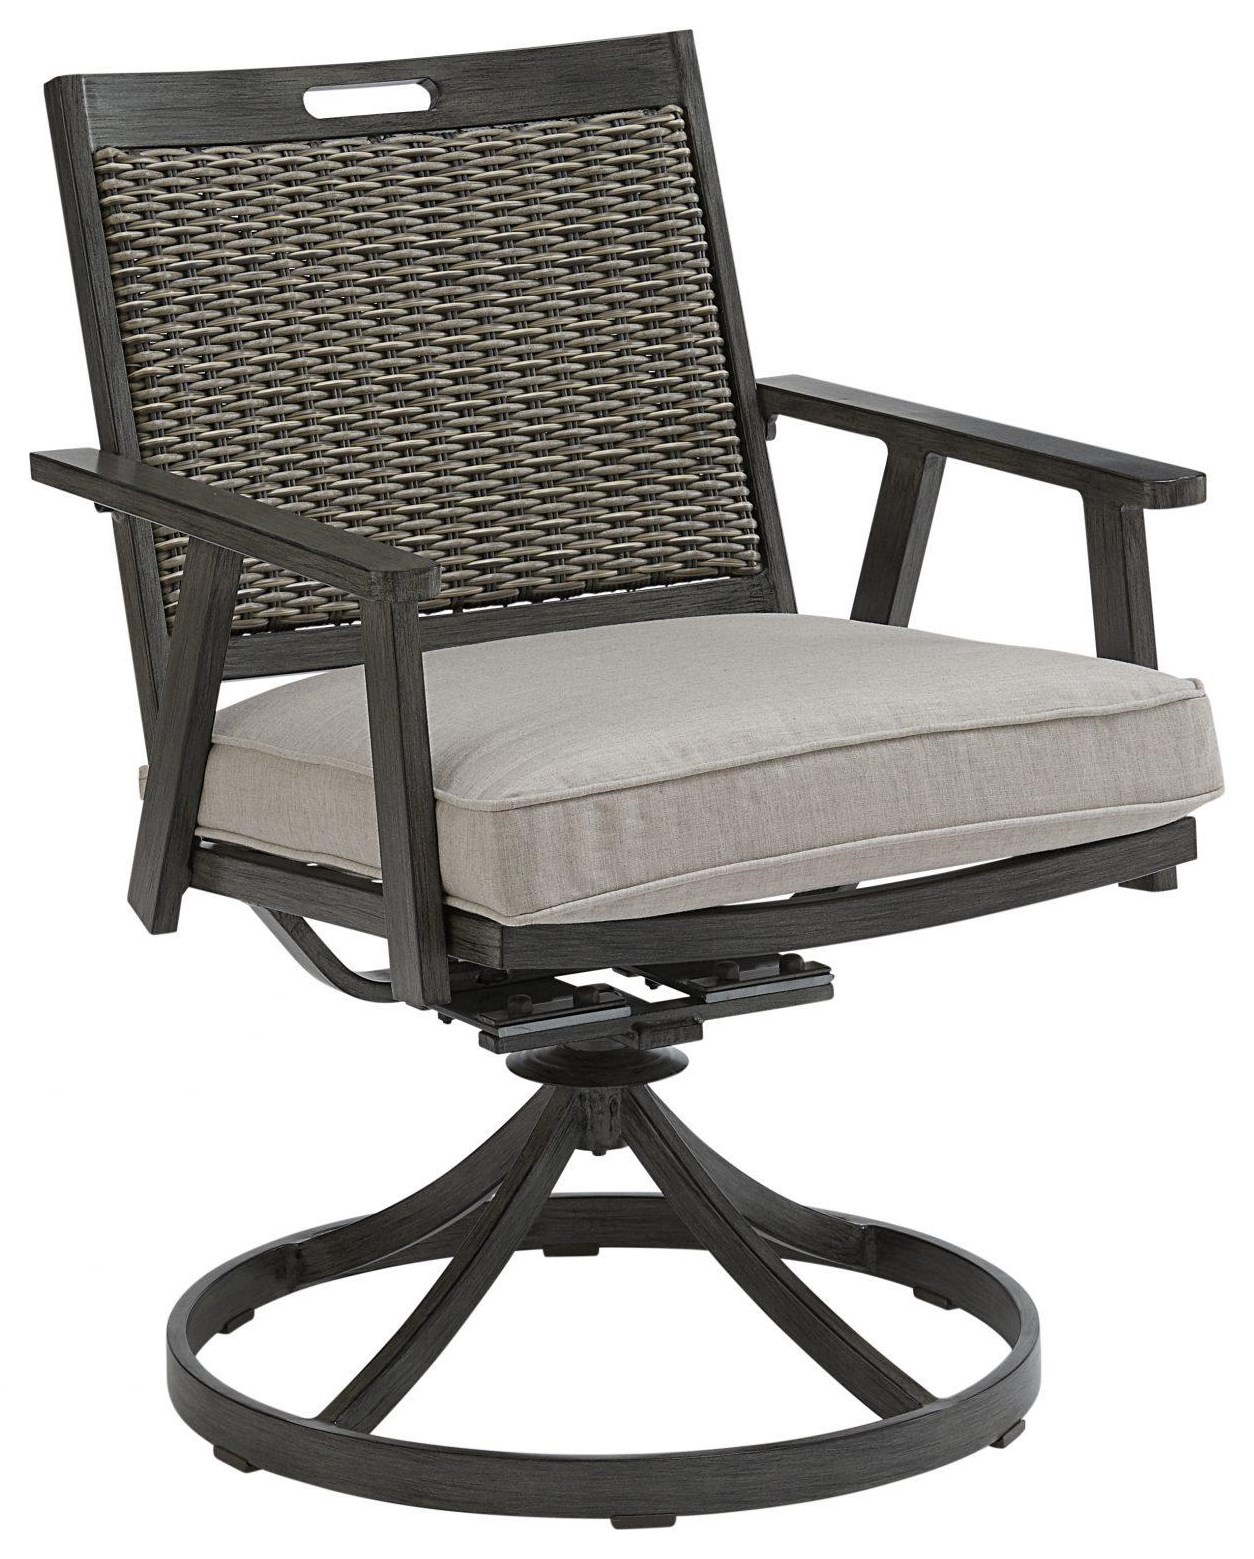 Adison Swivel Chair by Apricity Outdoor at Johnny Janosik